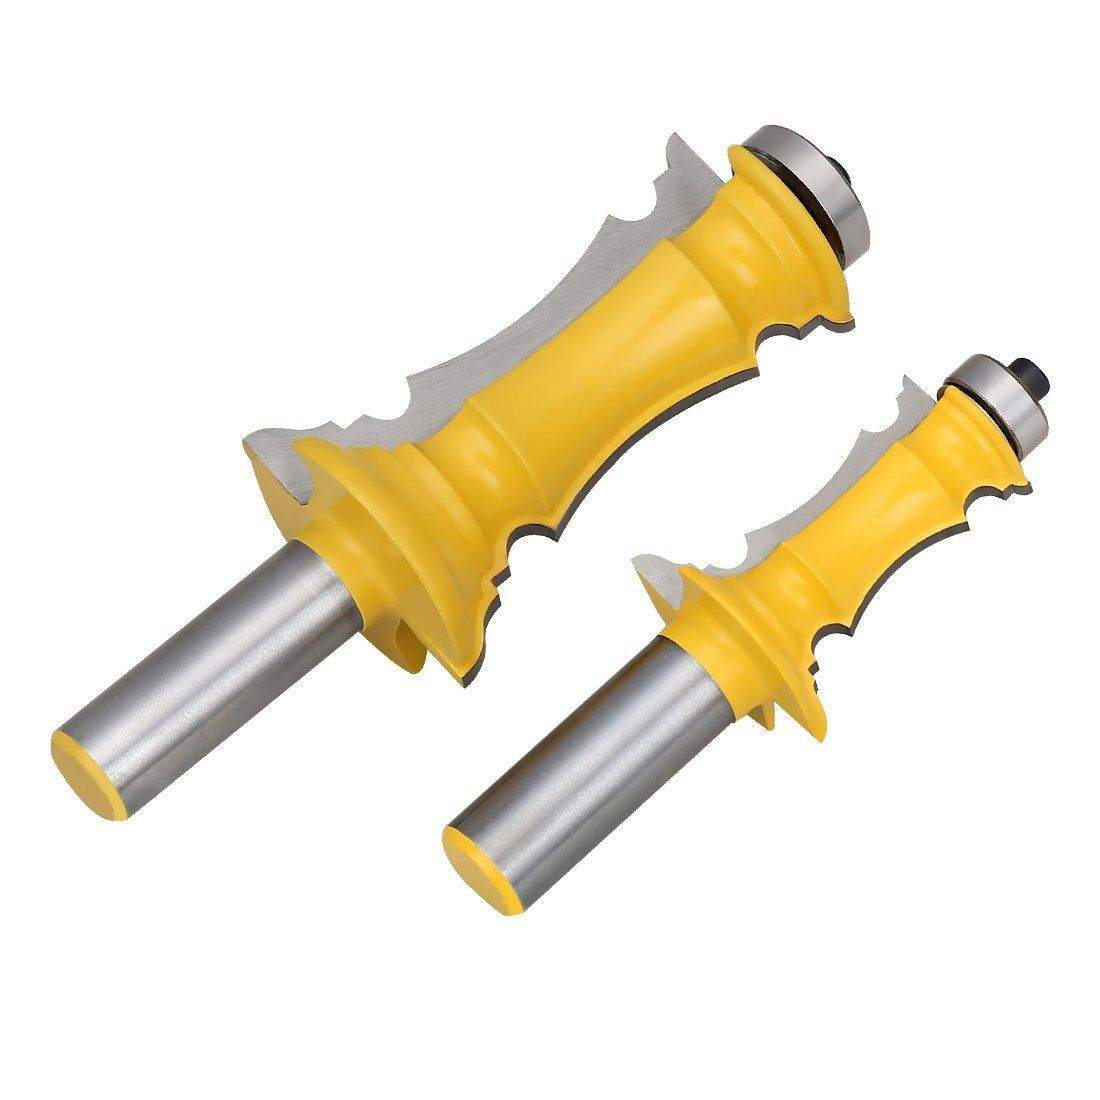 Woodworking Milling Cutter Router Bit Set 1/2 inch Shank Mitered Door & Drawer Panel Molding Router Bit Set(2Pcs) 3pcs set bit raised panel cabinet door router bit set 1 2 inch milling cutter for woodworking cutter cutting power tools